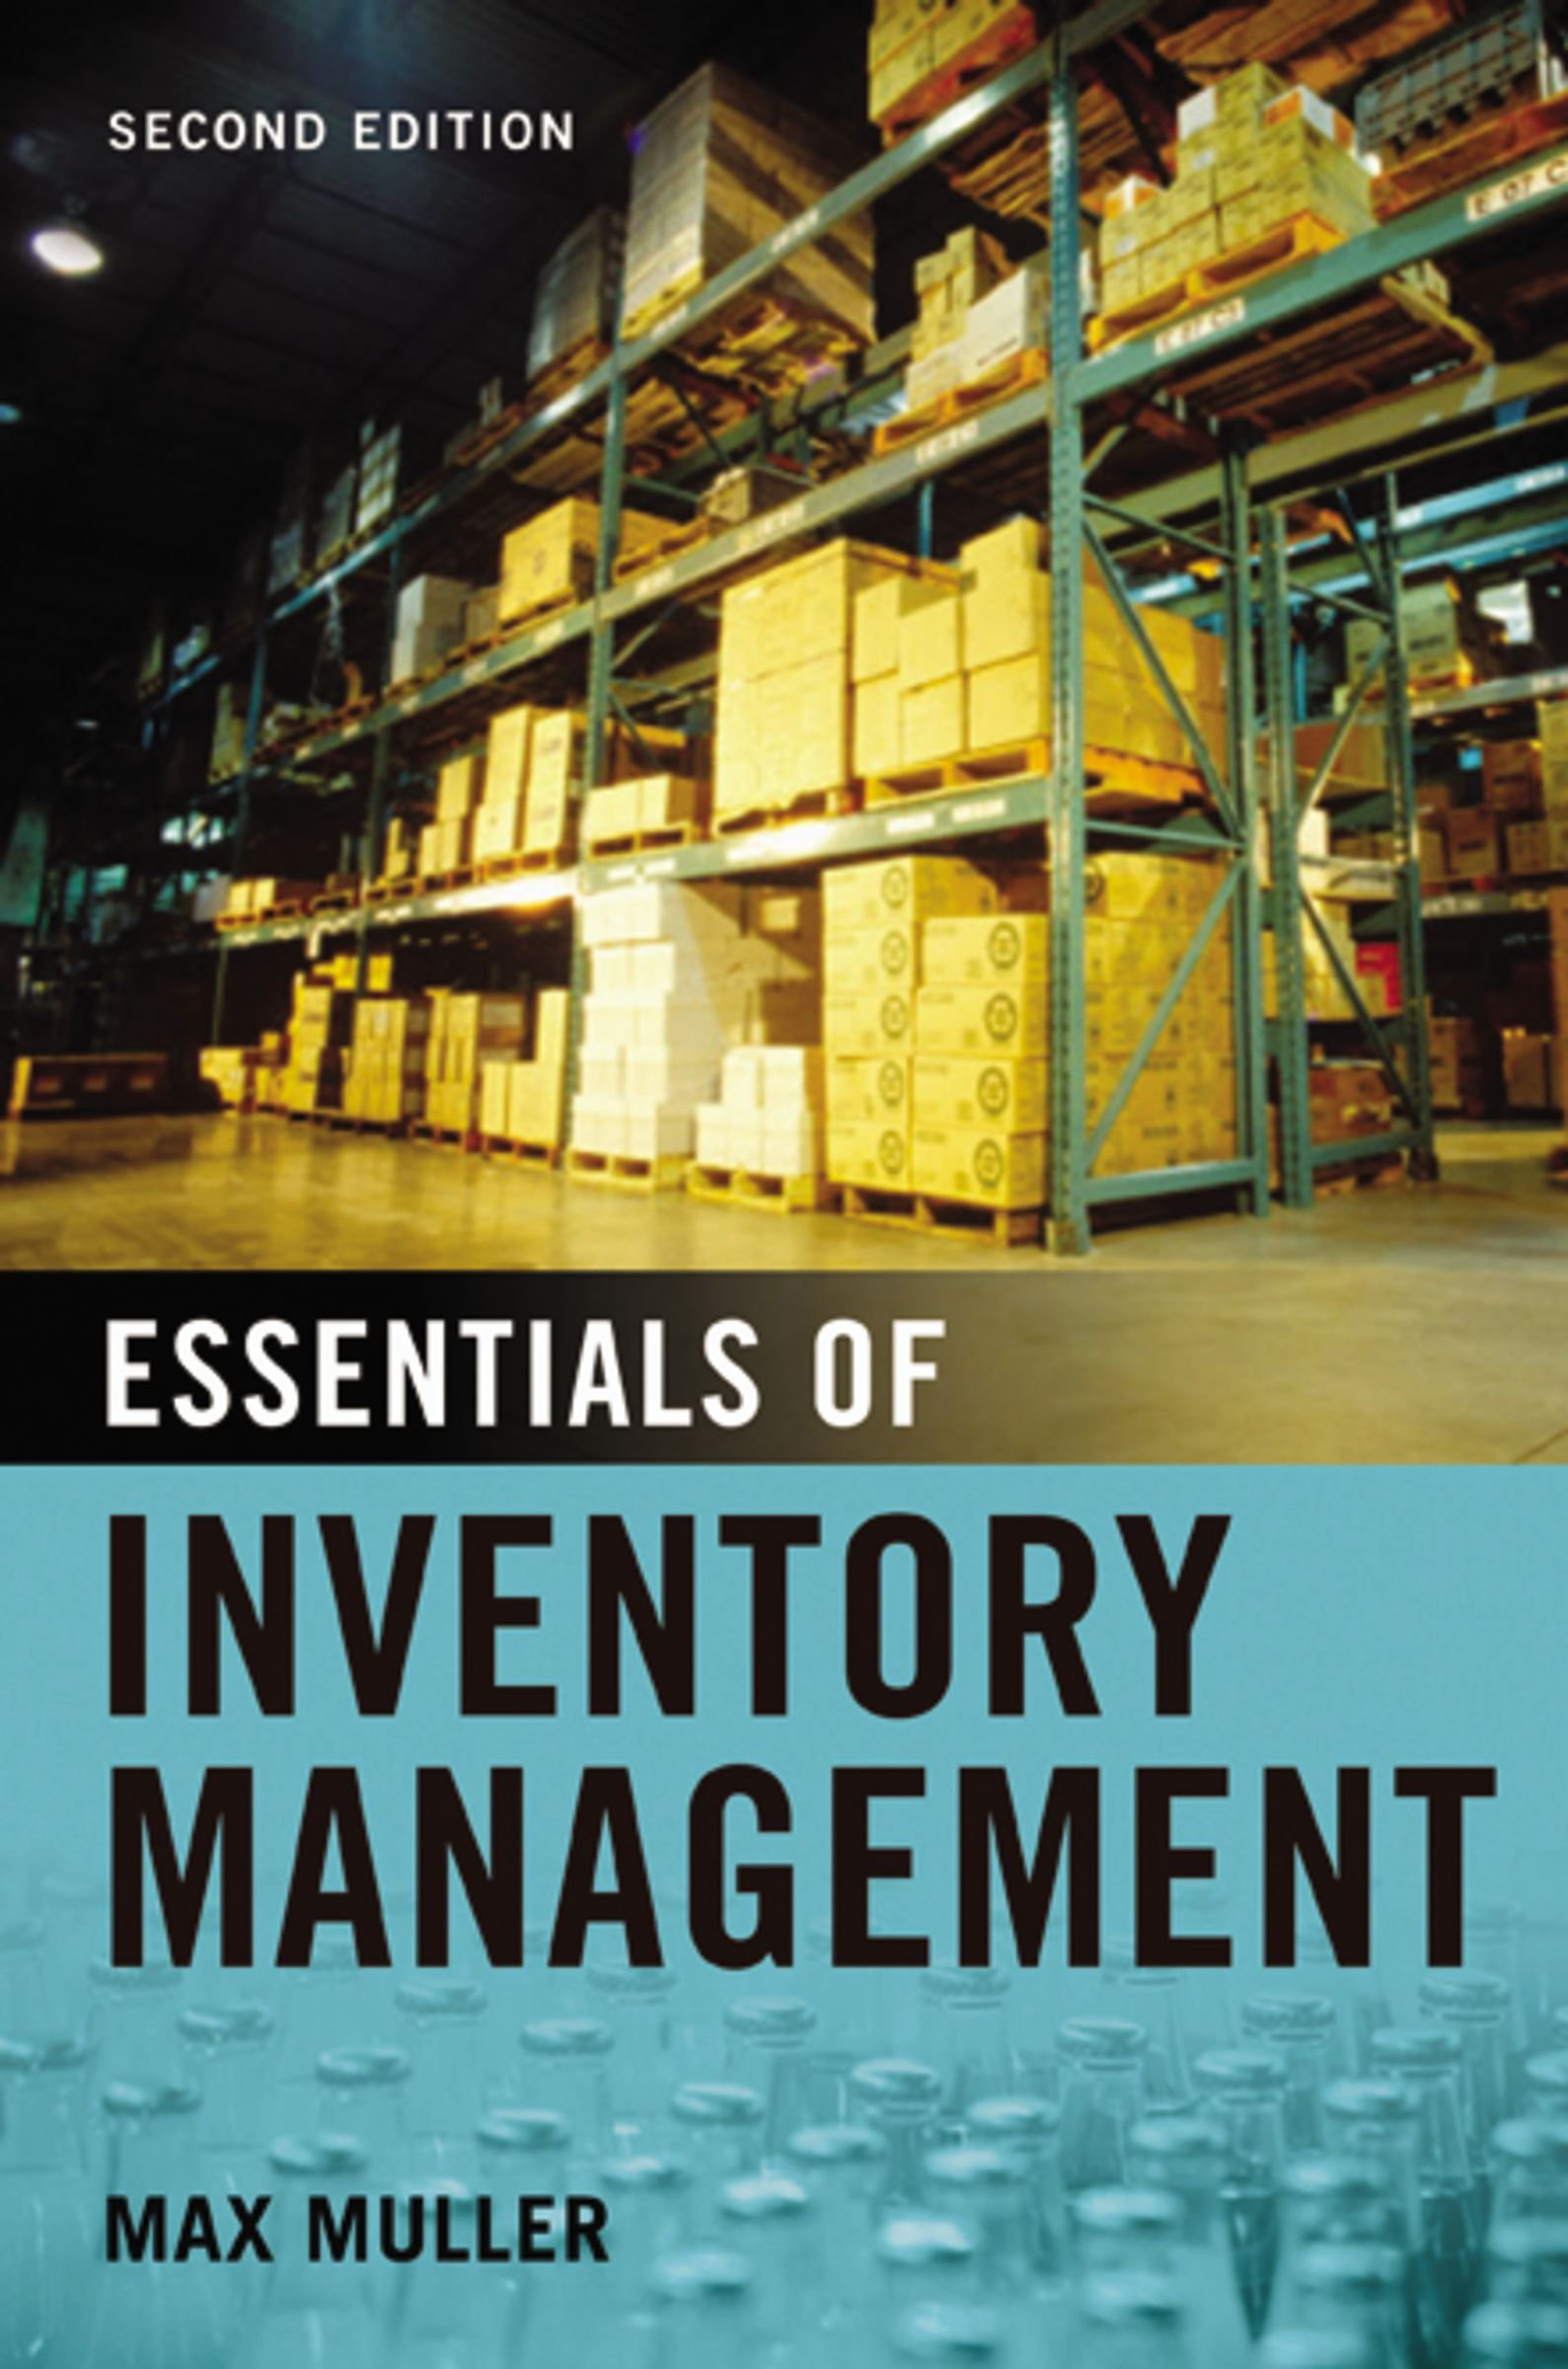 essentials inventory management download by max muller